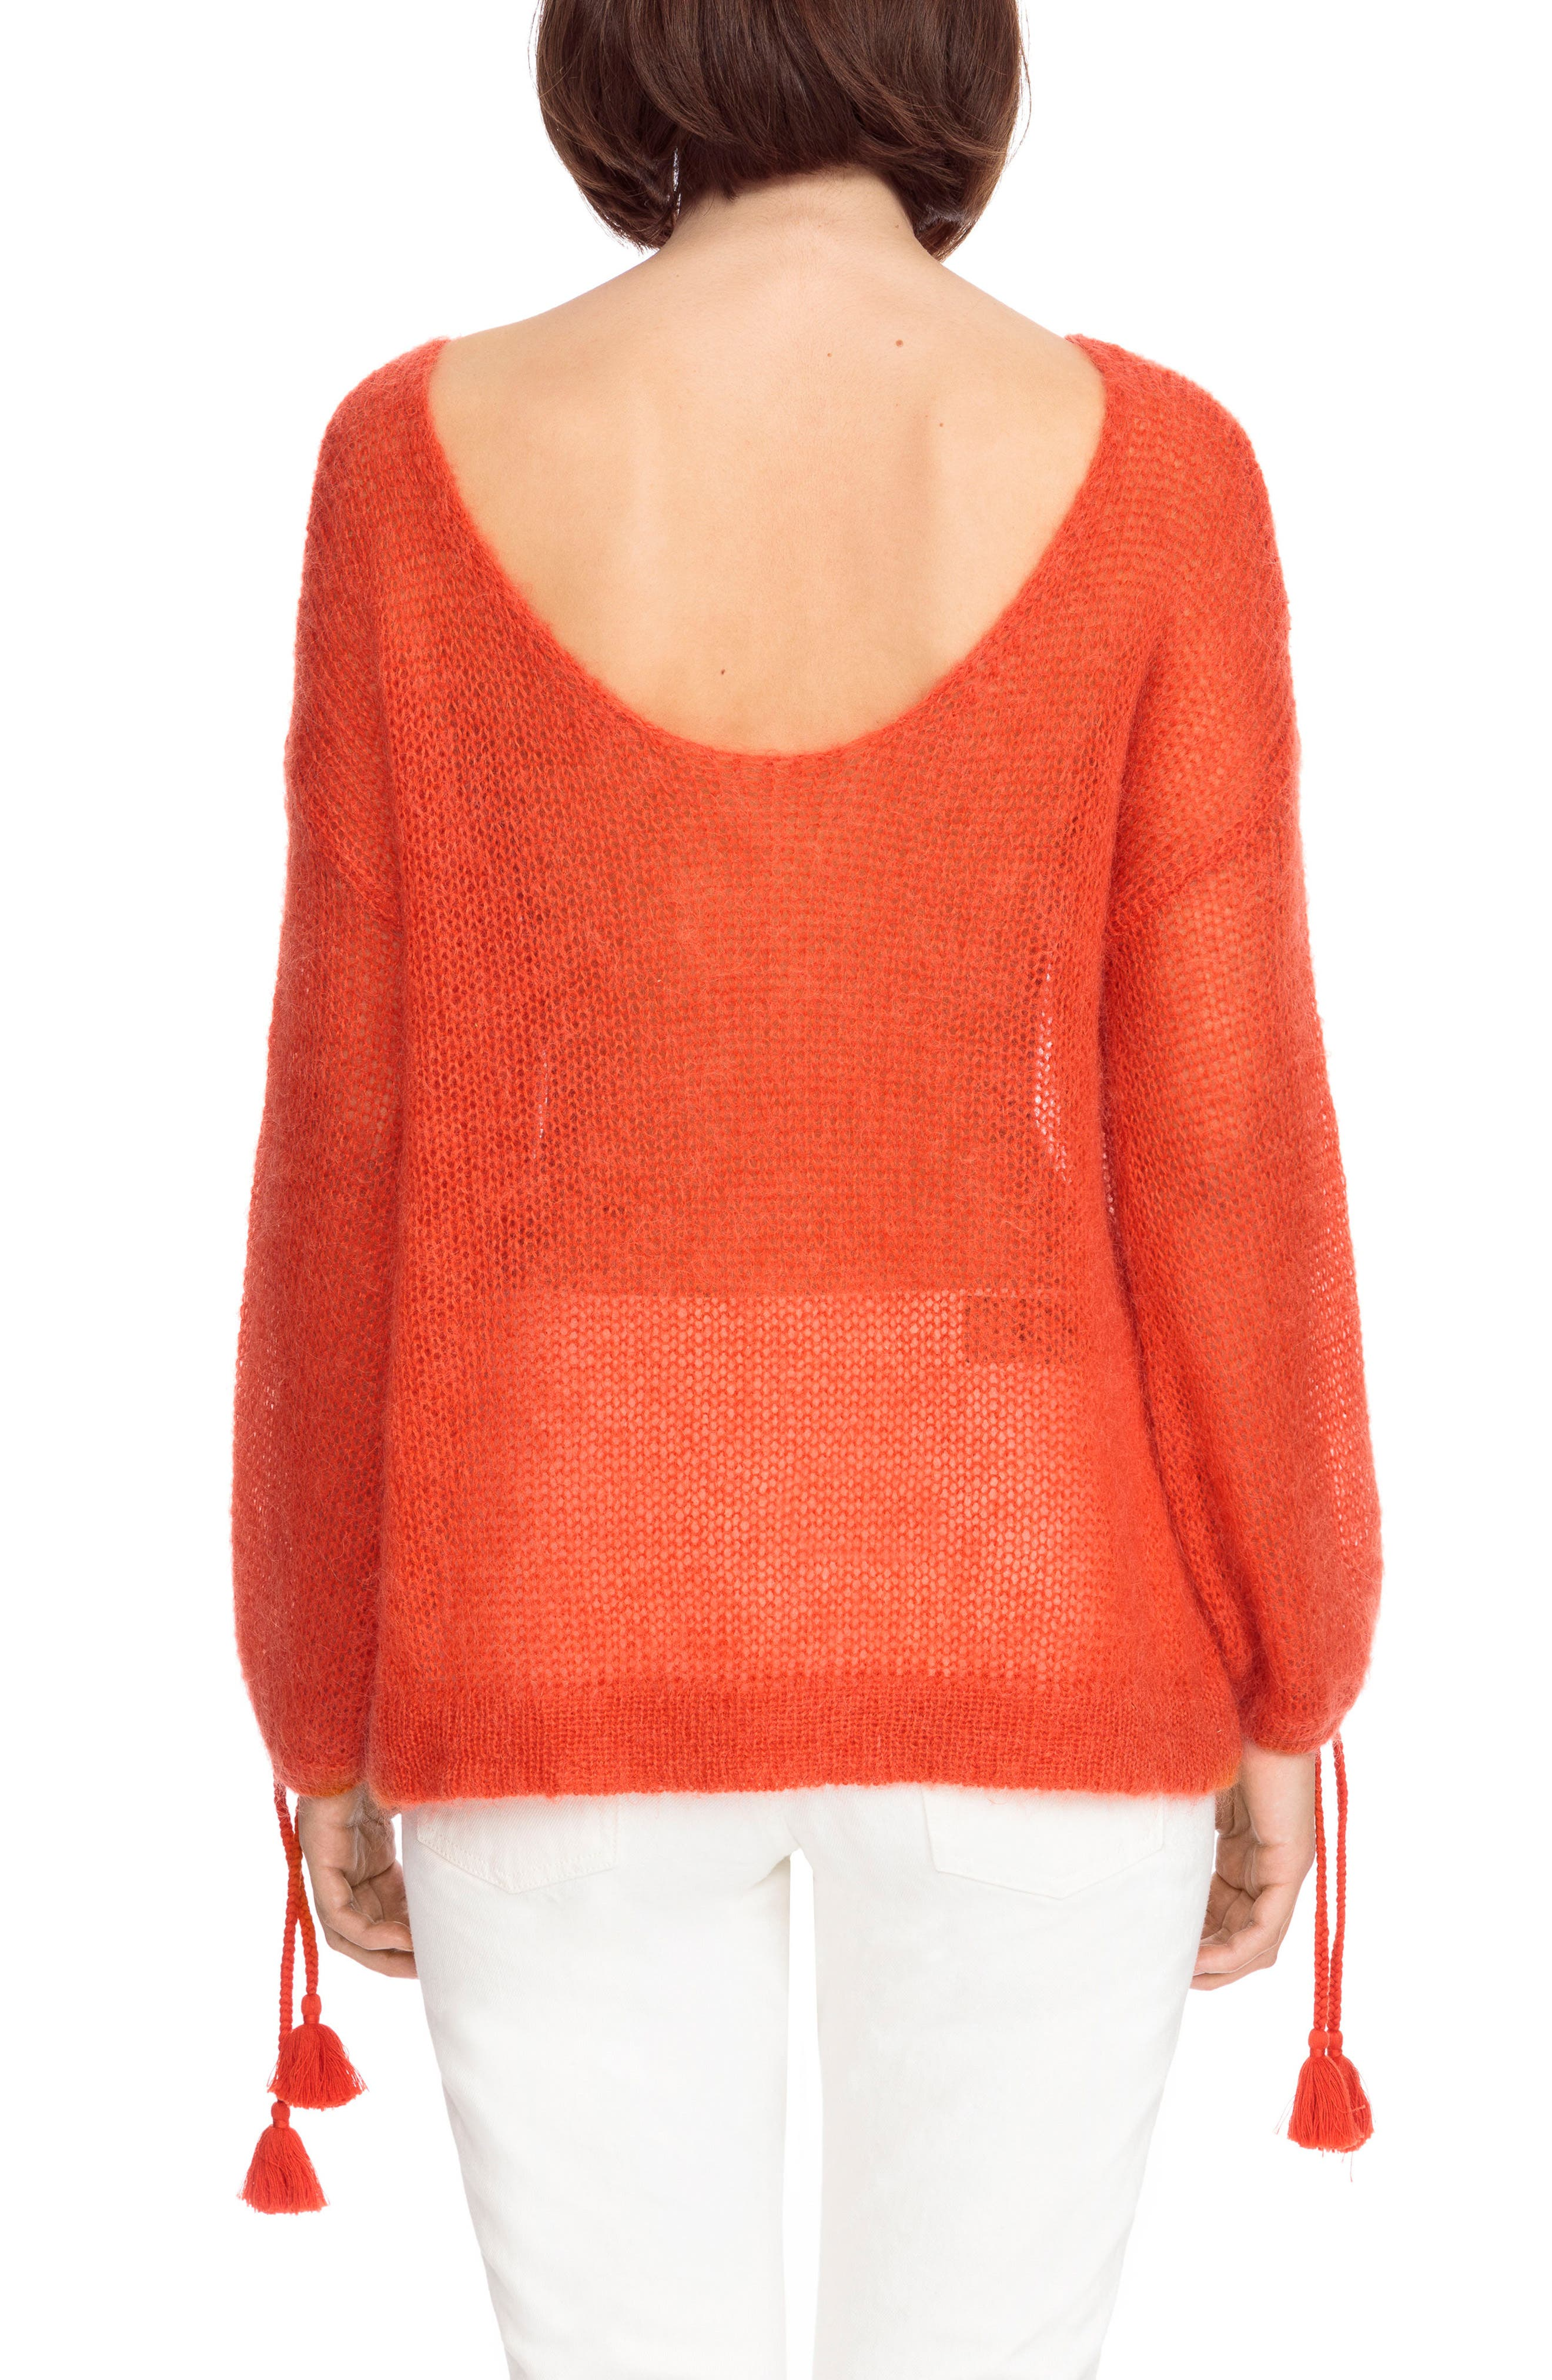 Dicky Tie Cuff Sweater,                             Alternate thumbnail 3, color,                             Orange Red